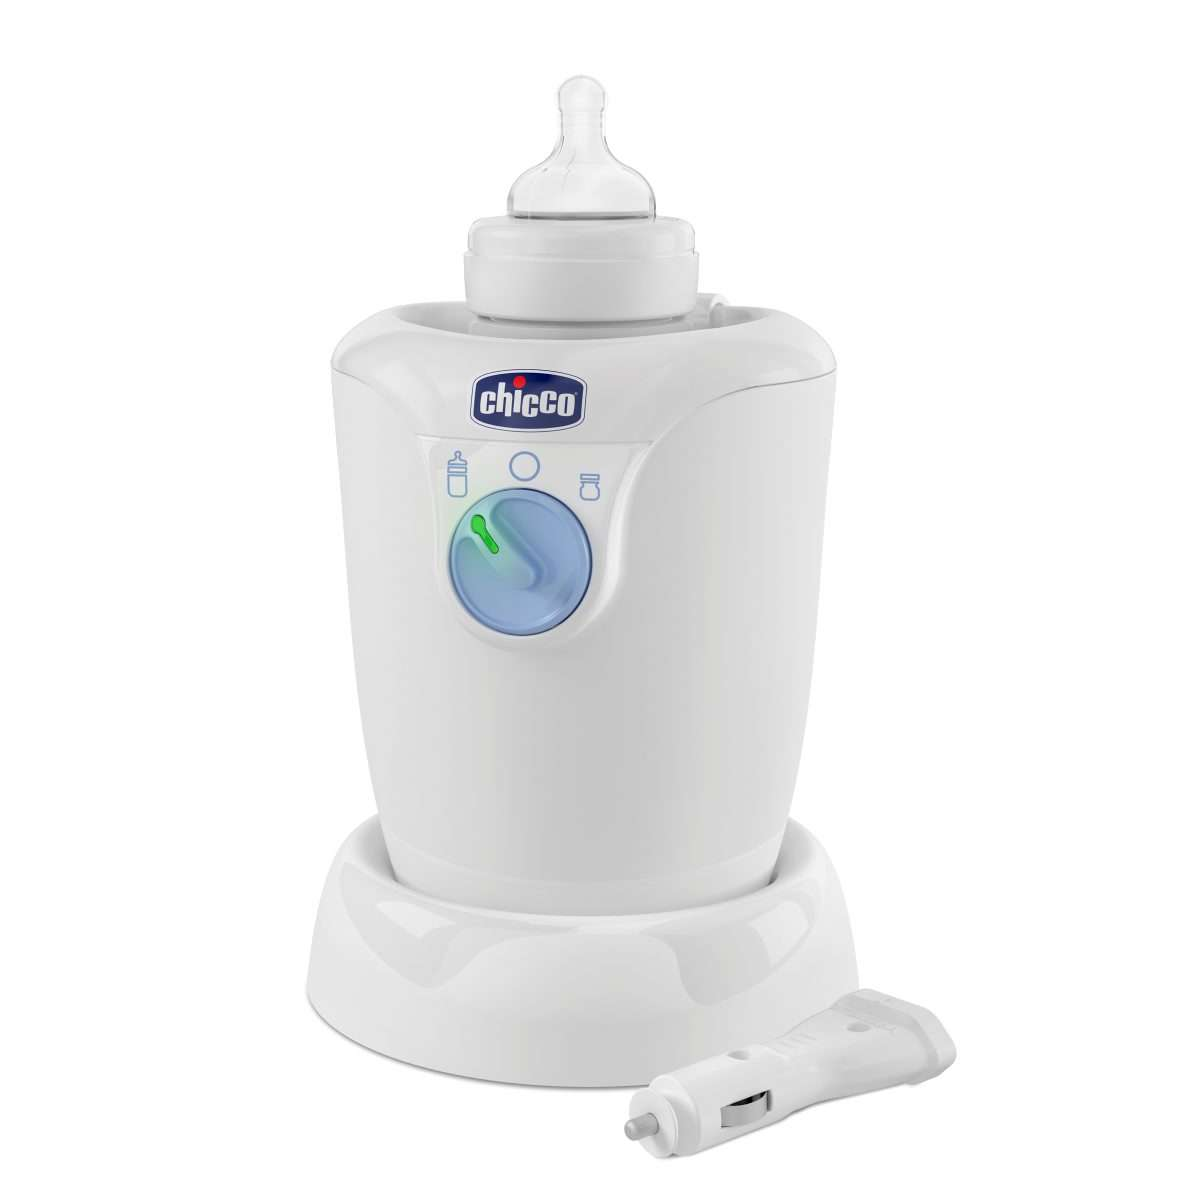 Chicco home travel bottle warmer 07388 Pudelīšu sildītājs